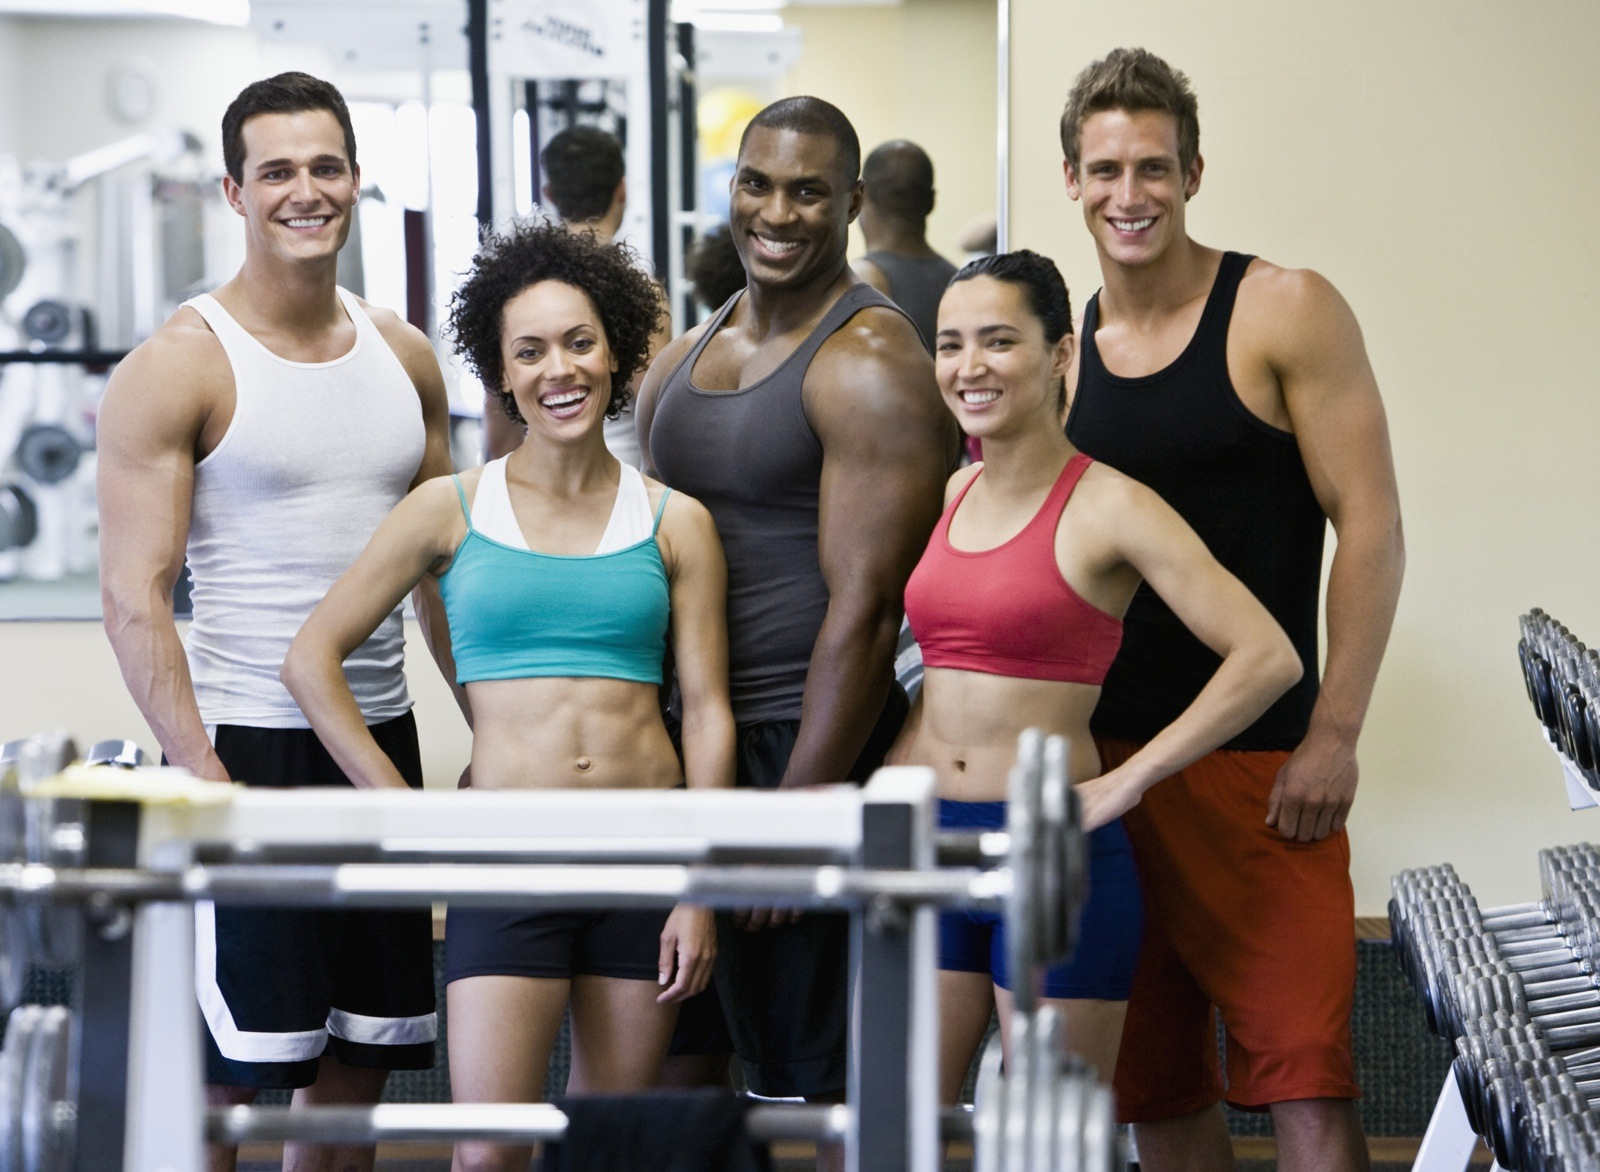 personal training dating Free classified ads for personals and everything else find what you are looking for or create your own ad for free  training & education services web design & tech weddings & photography all for rent apartments  casual dating men seeking men men seeking women missed connections women seeking men women seeking women.